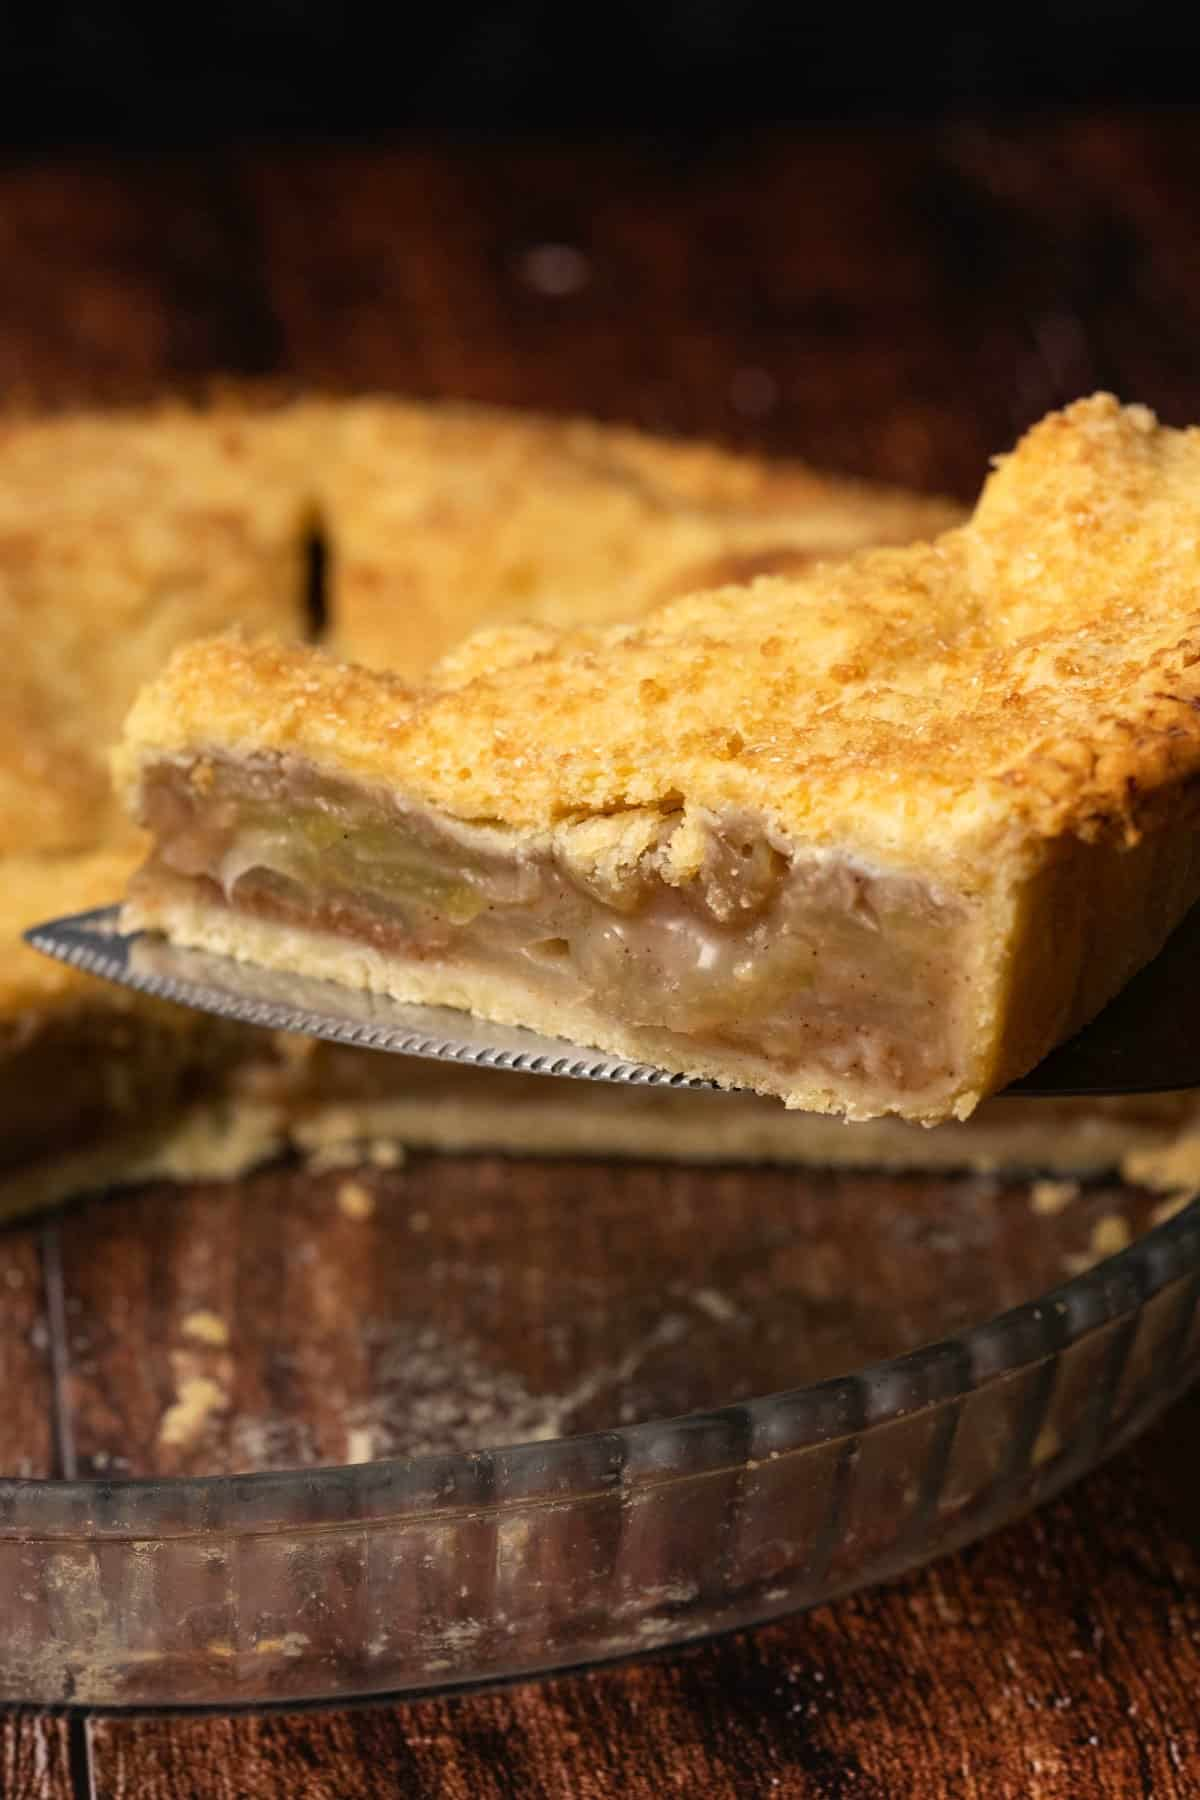 Slice of apple pie on a cake lifter.